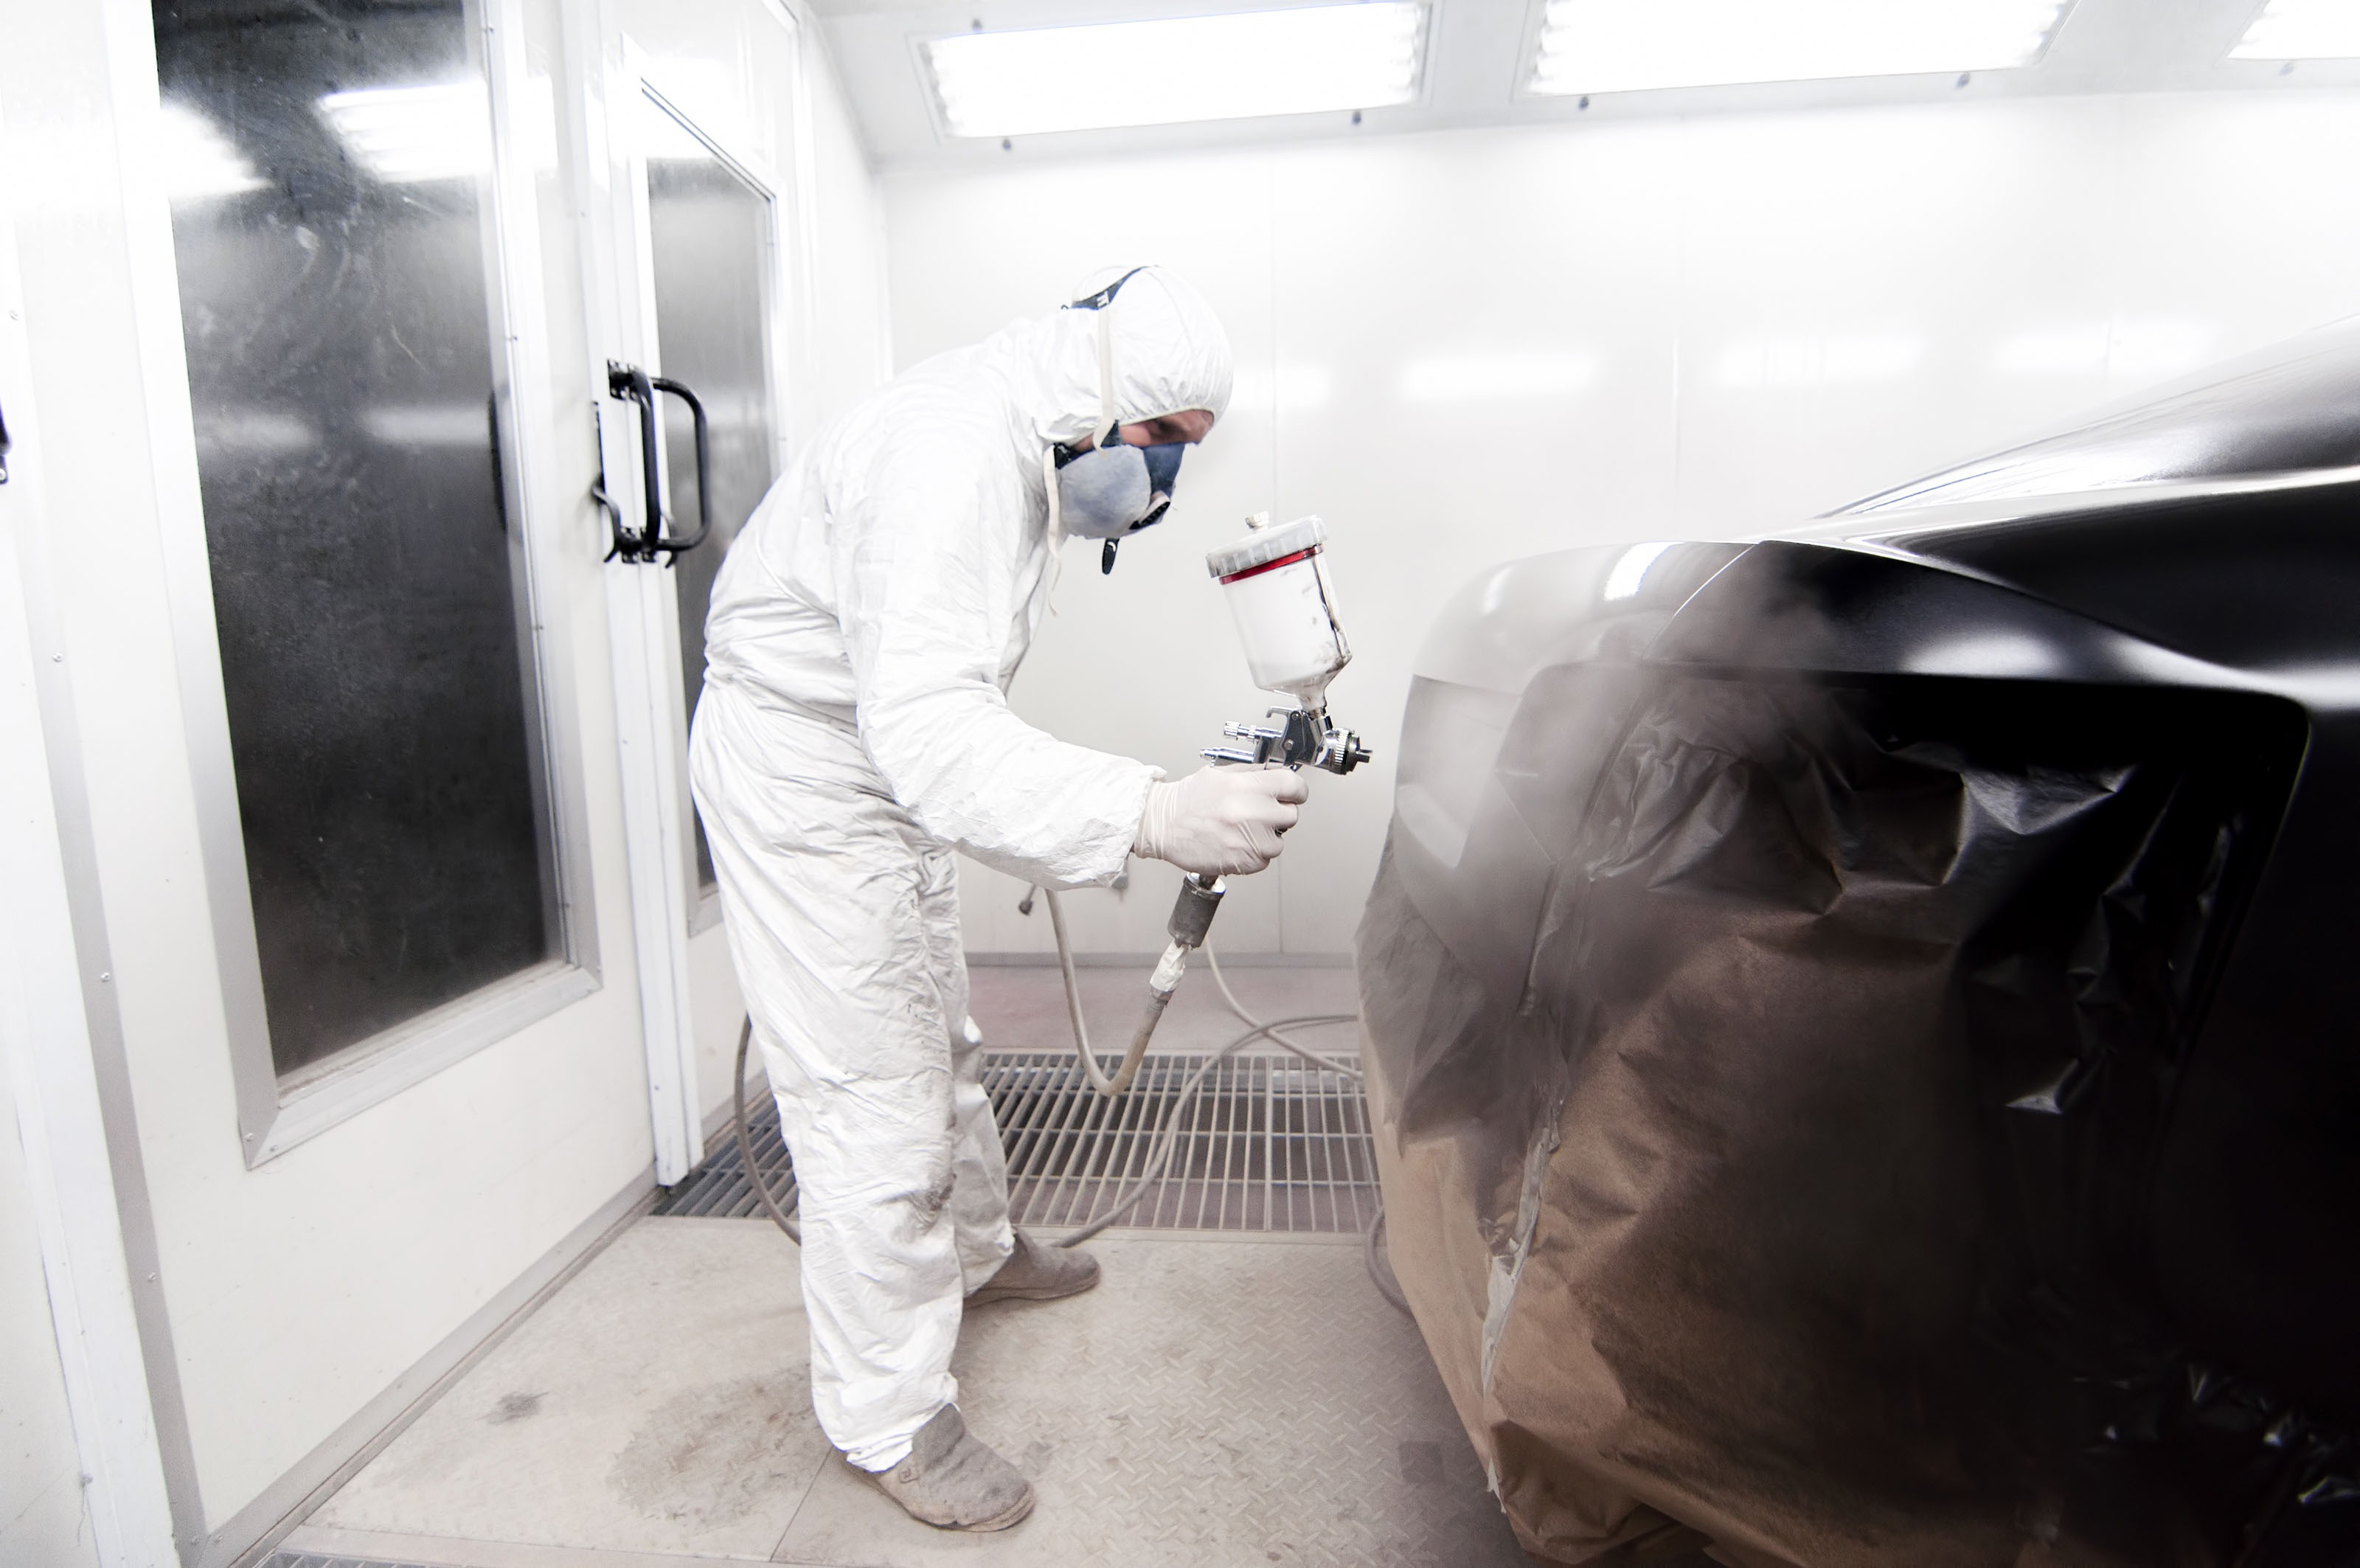 A image of someone painting a car black.